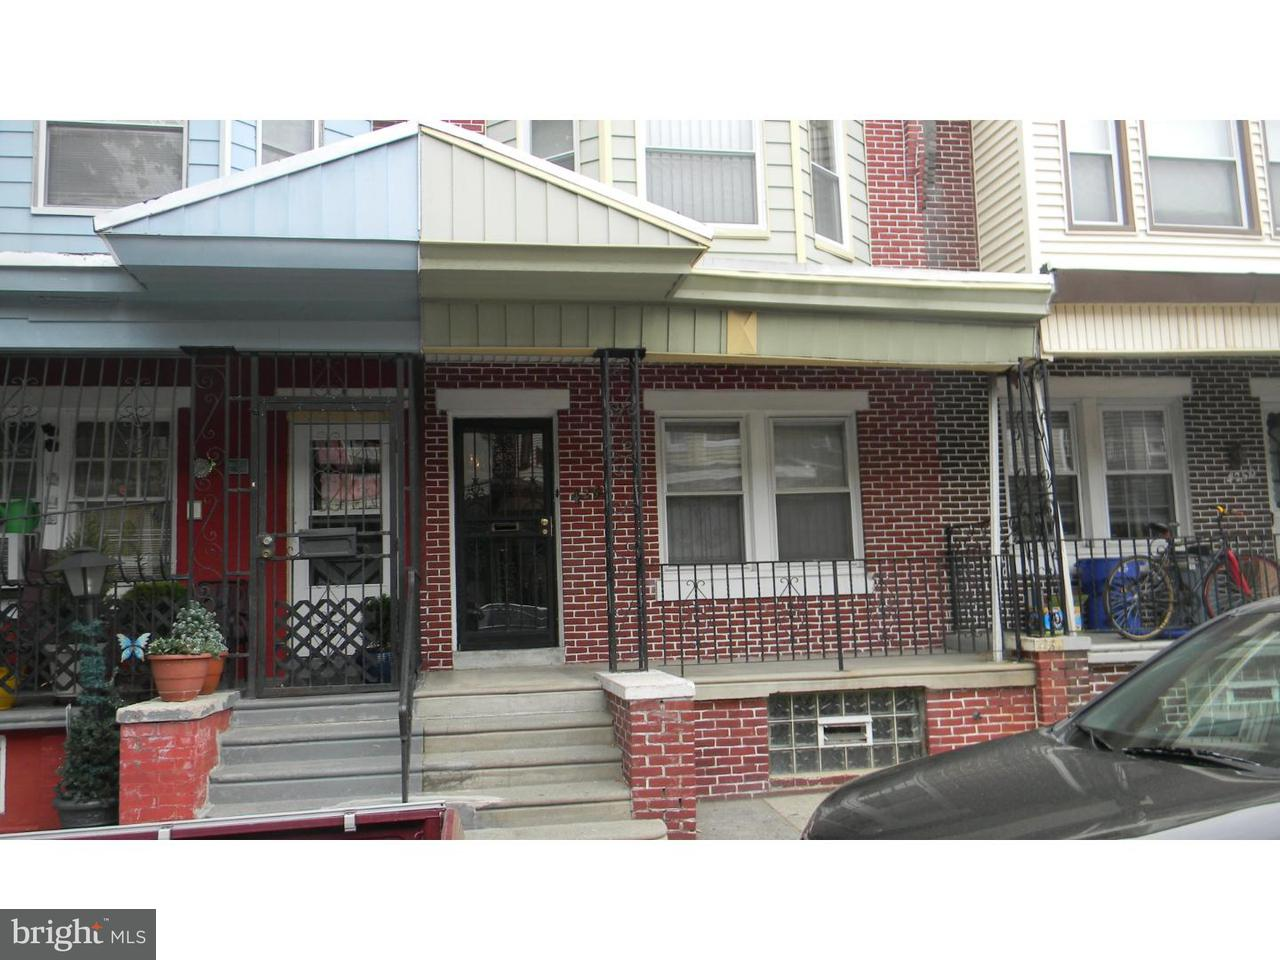 4254 N 8TH Philadelphia, PA 19140